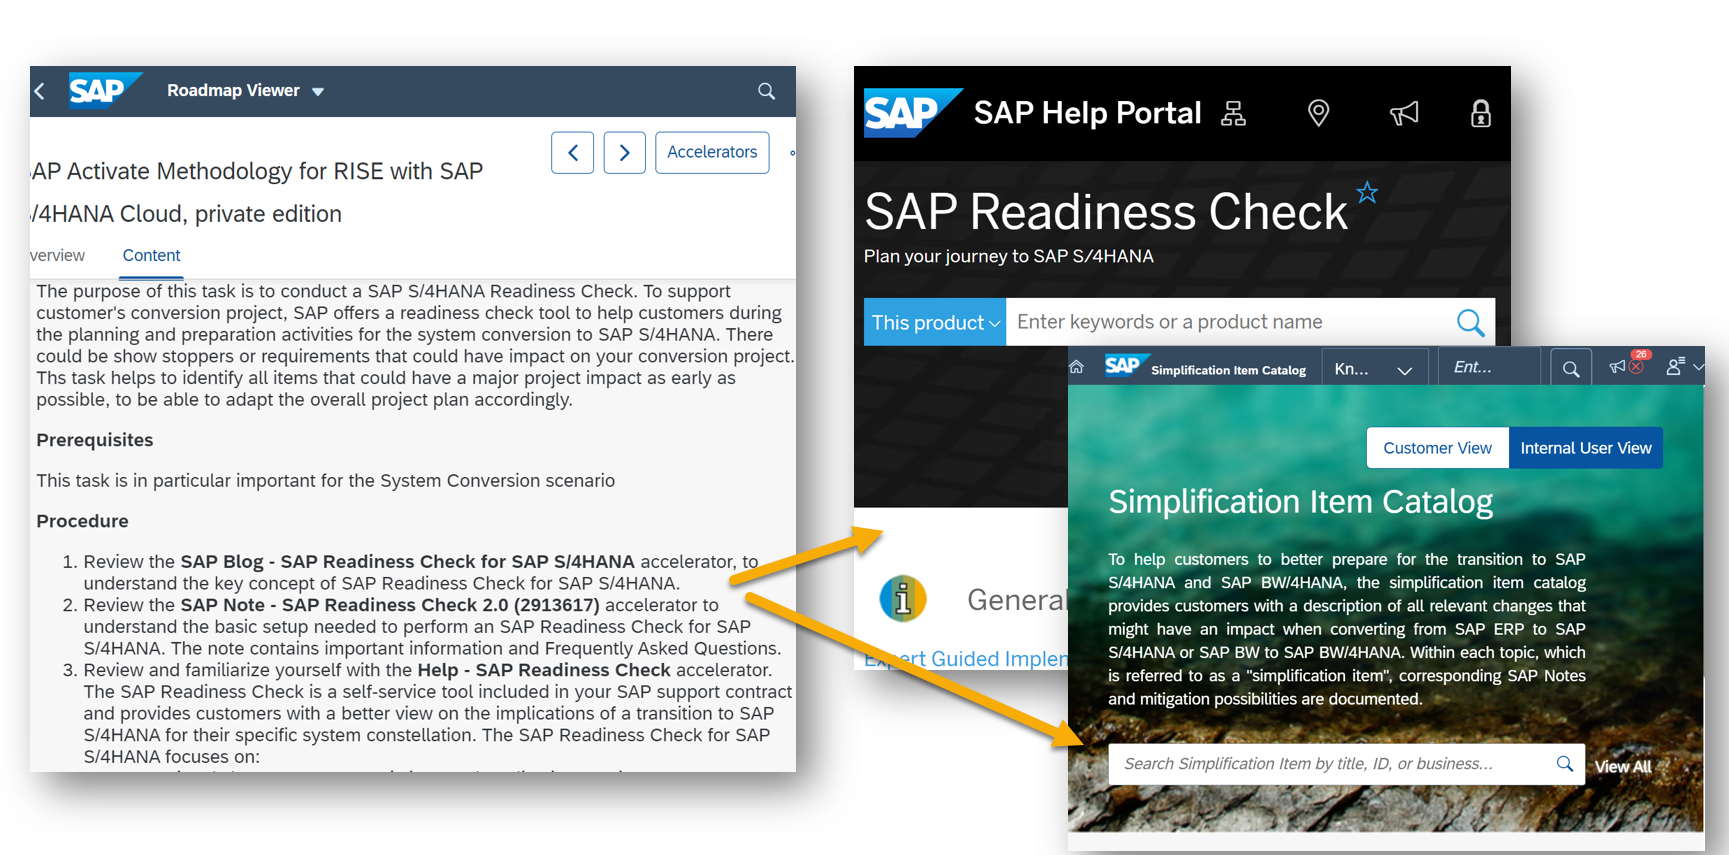 Figure%205%3A%20SAP%20Activate%20S/4HANA%20Readiness%20Check%20task